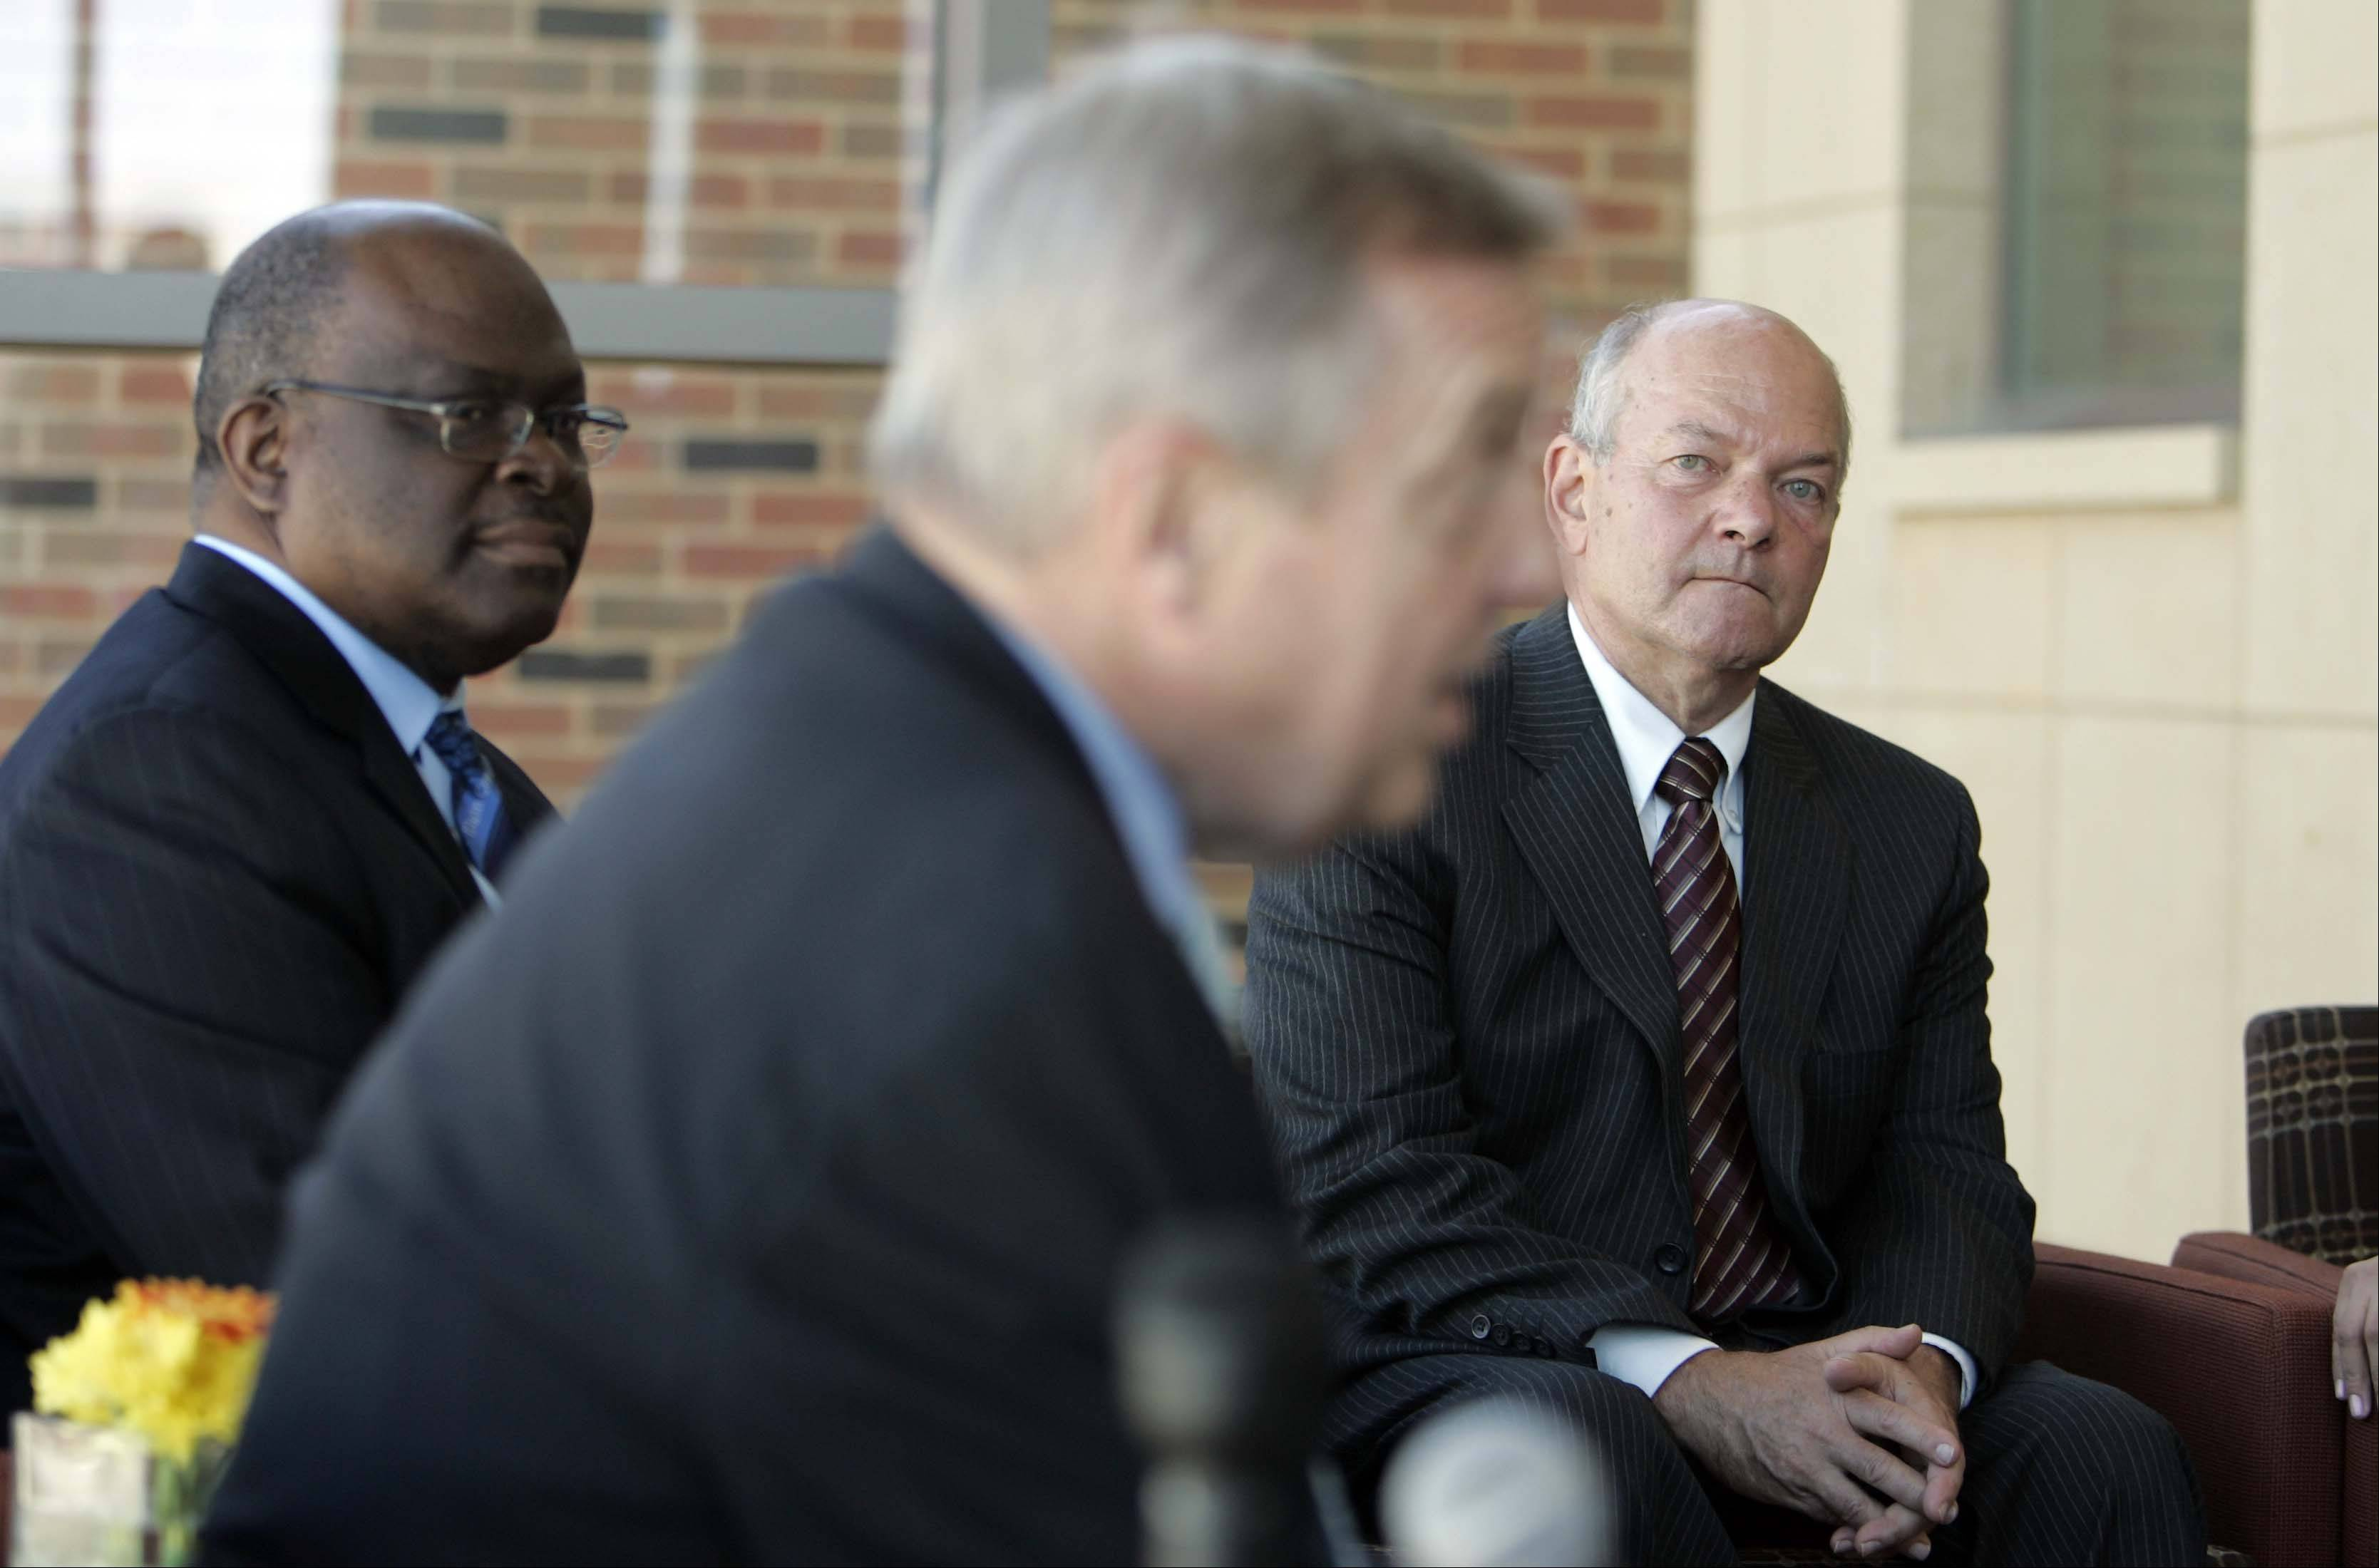 Elgin Community College President David Sam, left, and Elgin Mayor David Kaptain, right, listen as Sen. Dick Durbin, center, talks Tuesday about President Obama's deferred action policy, which is based on Durbin's DREAM Act at, Elgin Community College.